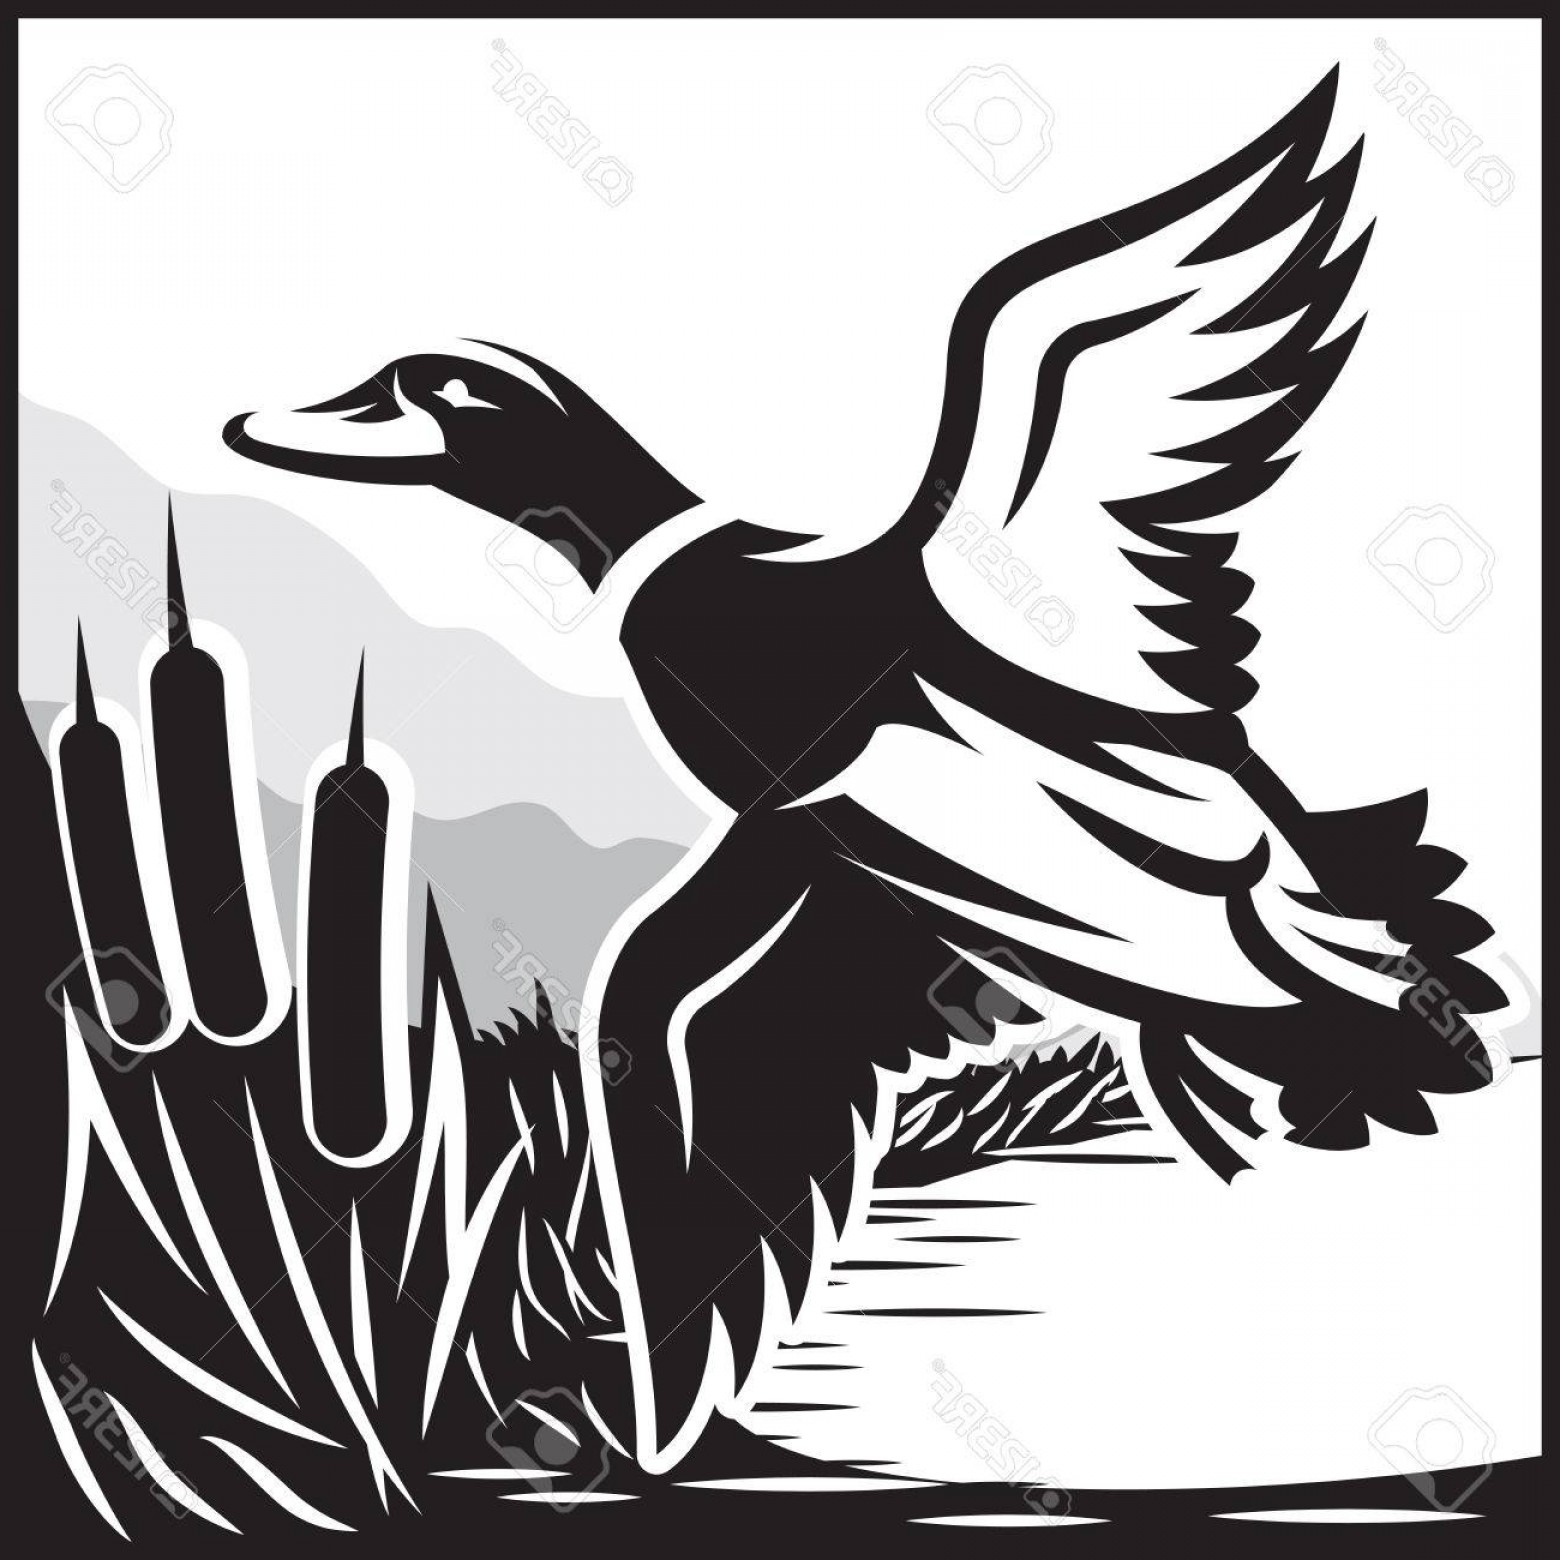 Flying Duck Outline Vector: Photostock Vector Monochrome Vector Illustration With Flying Wild Duck Over The Water